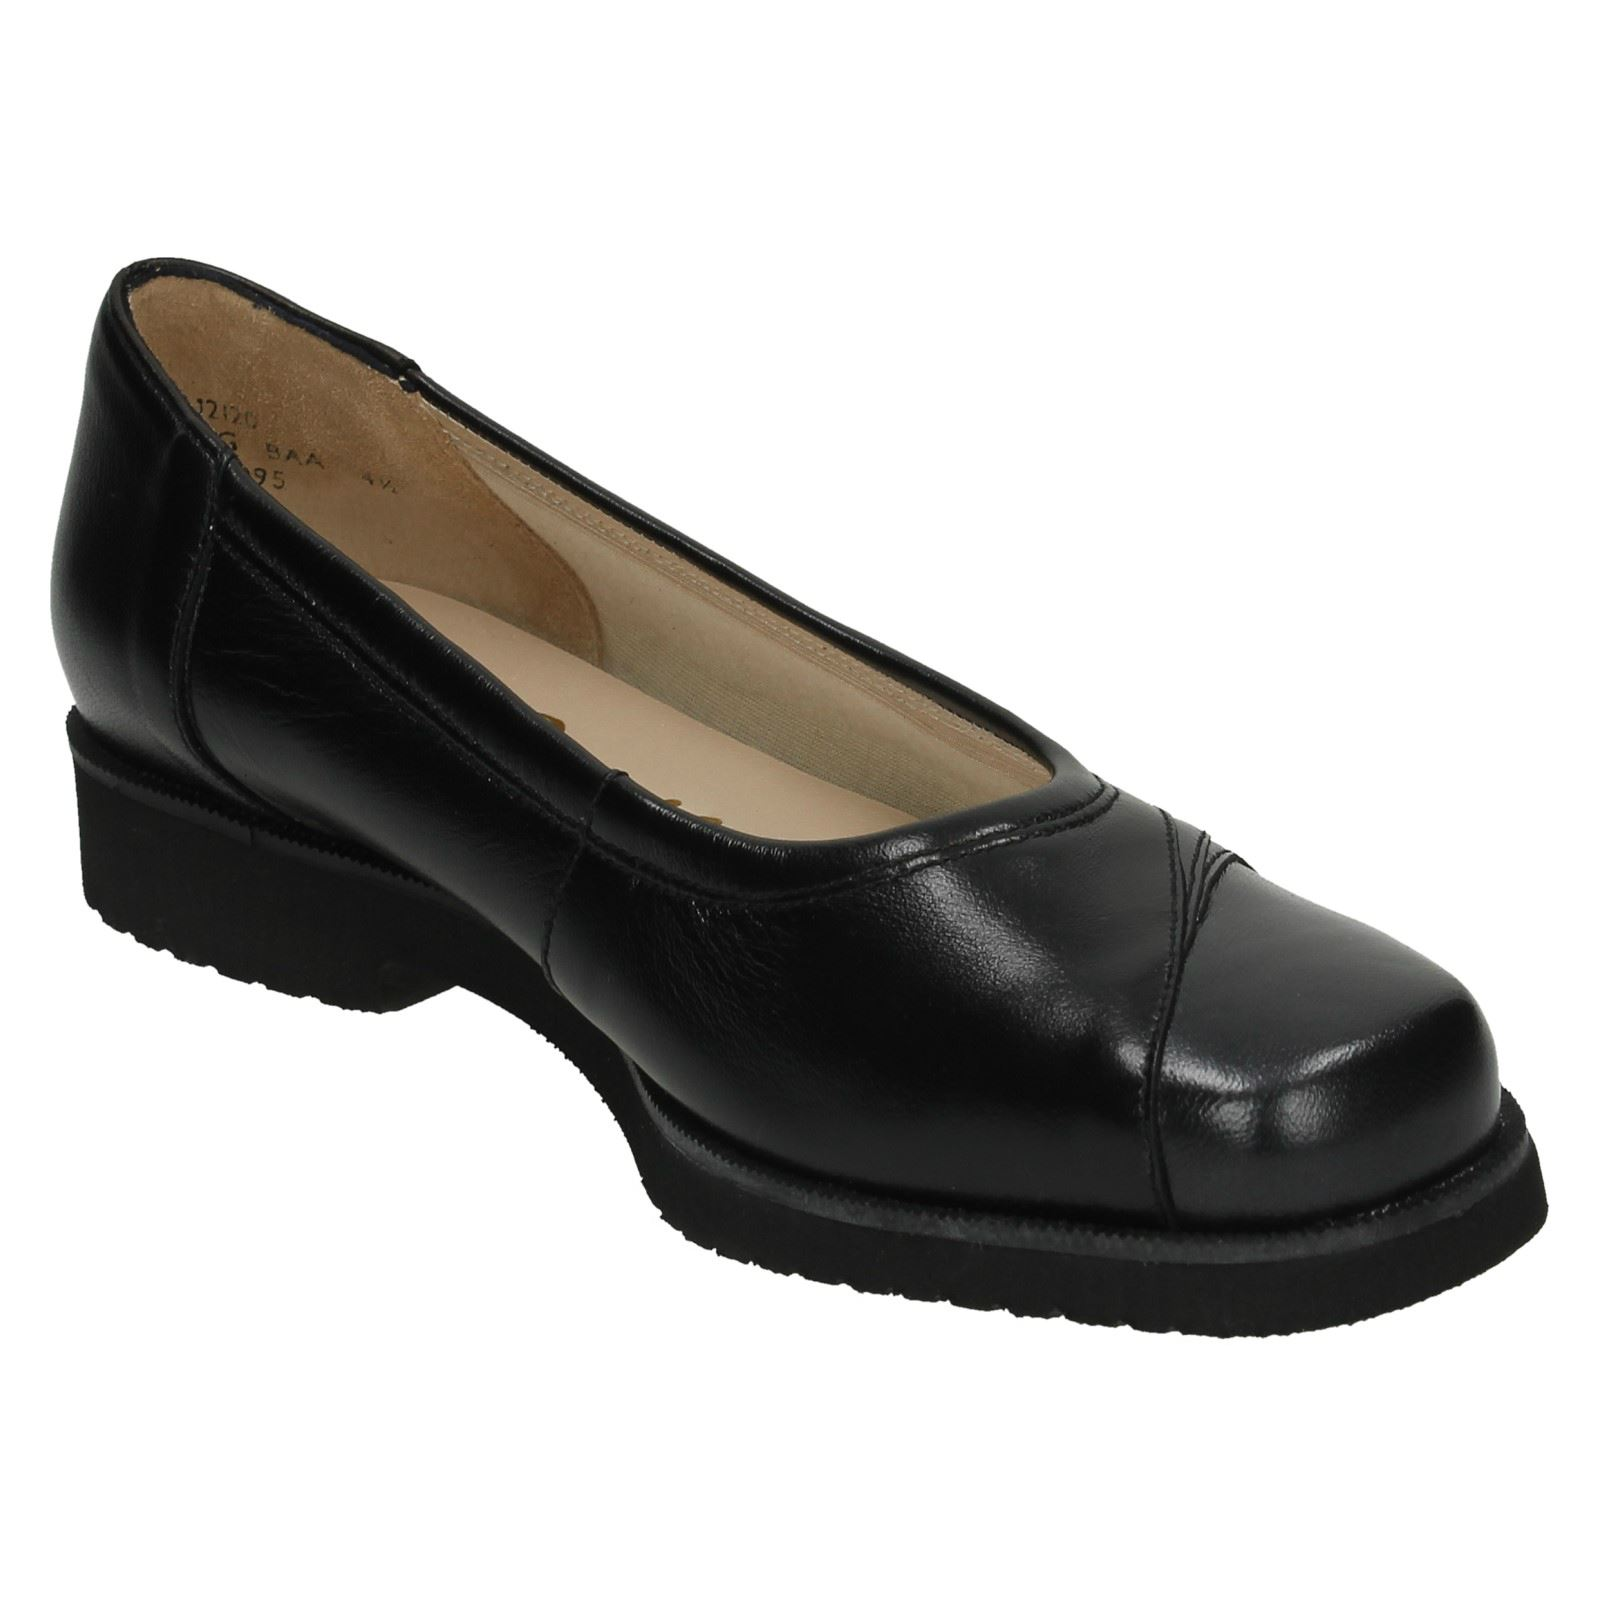 nil simile narrow fitting flat loafer shoes